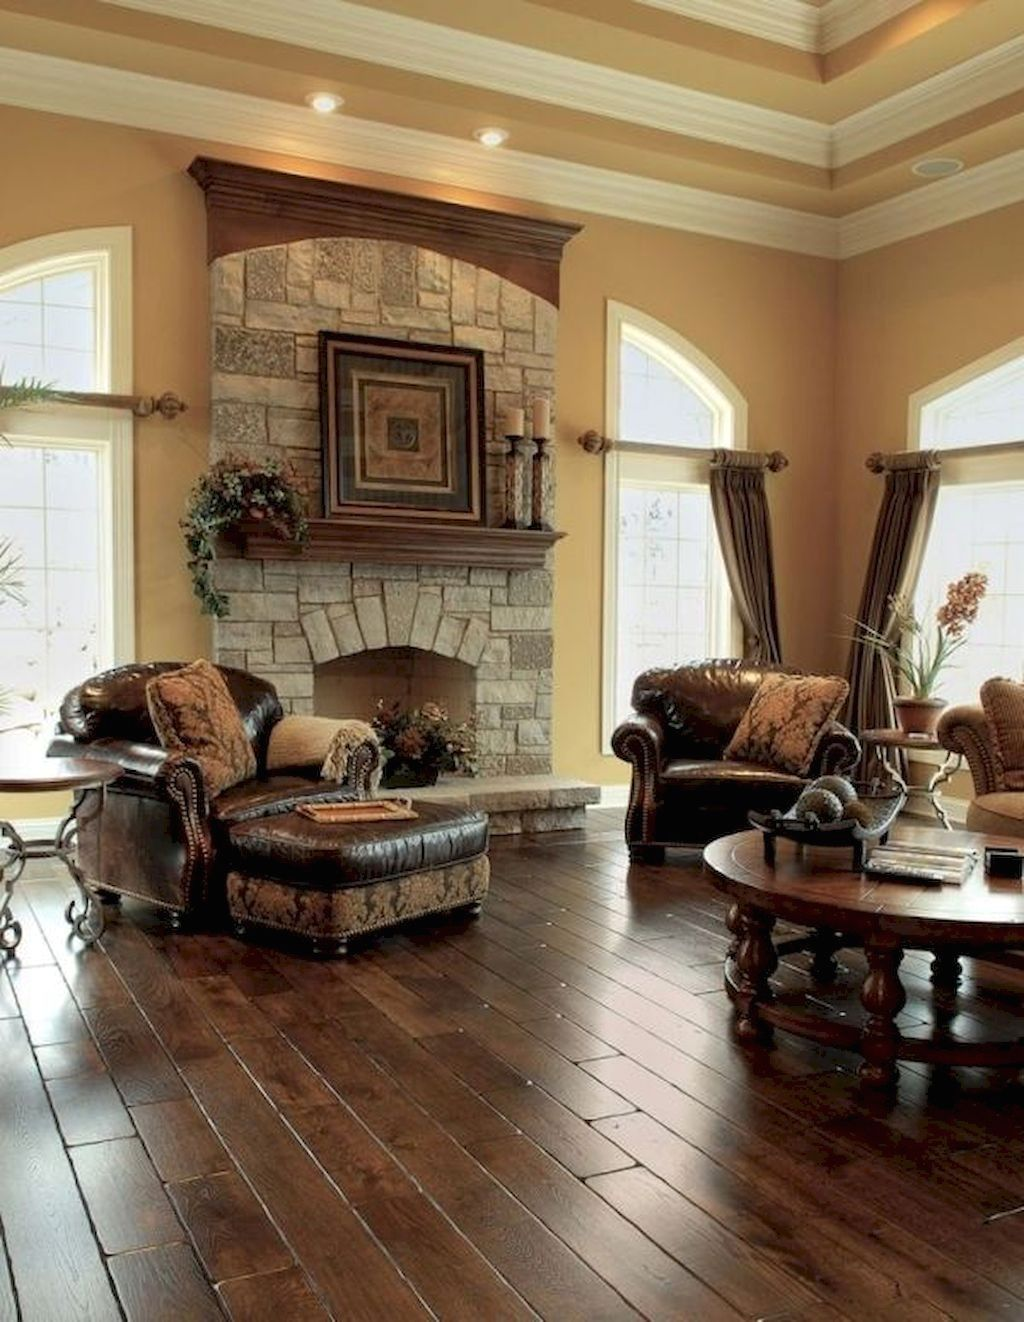 Creating A Rustic Living Room Decor: 29 Creative DIY Rustic Living Room Ideas You Can Create